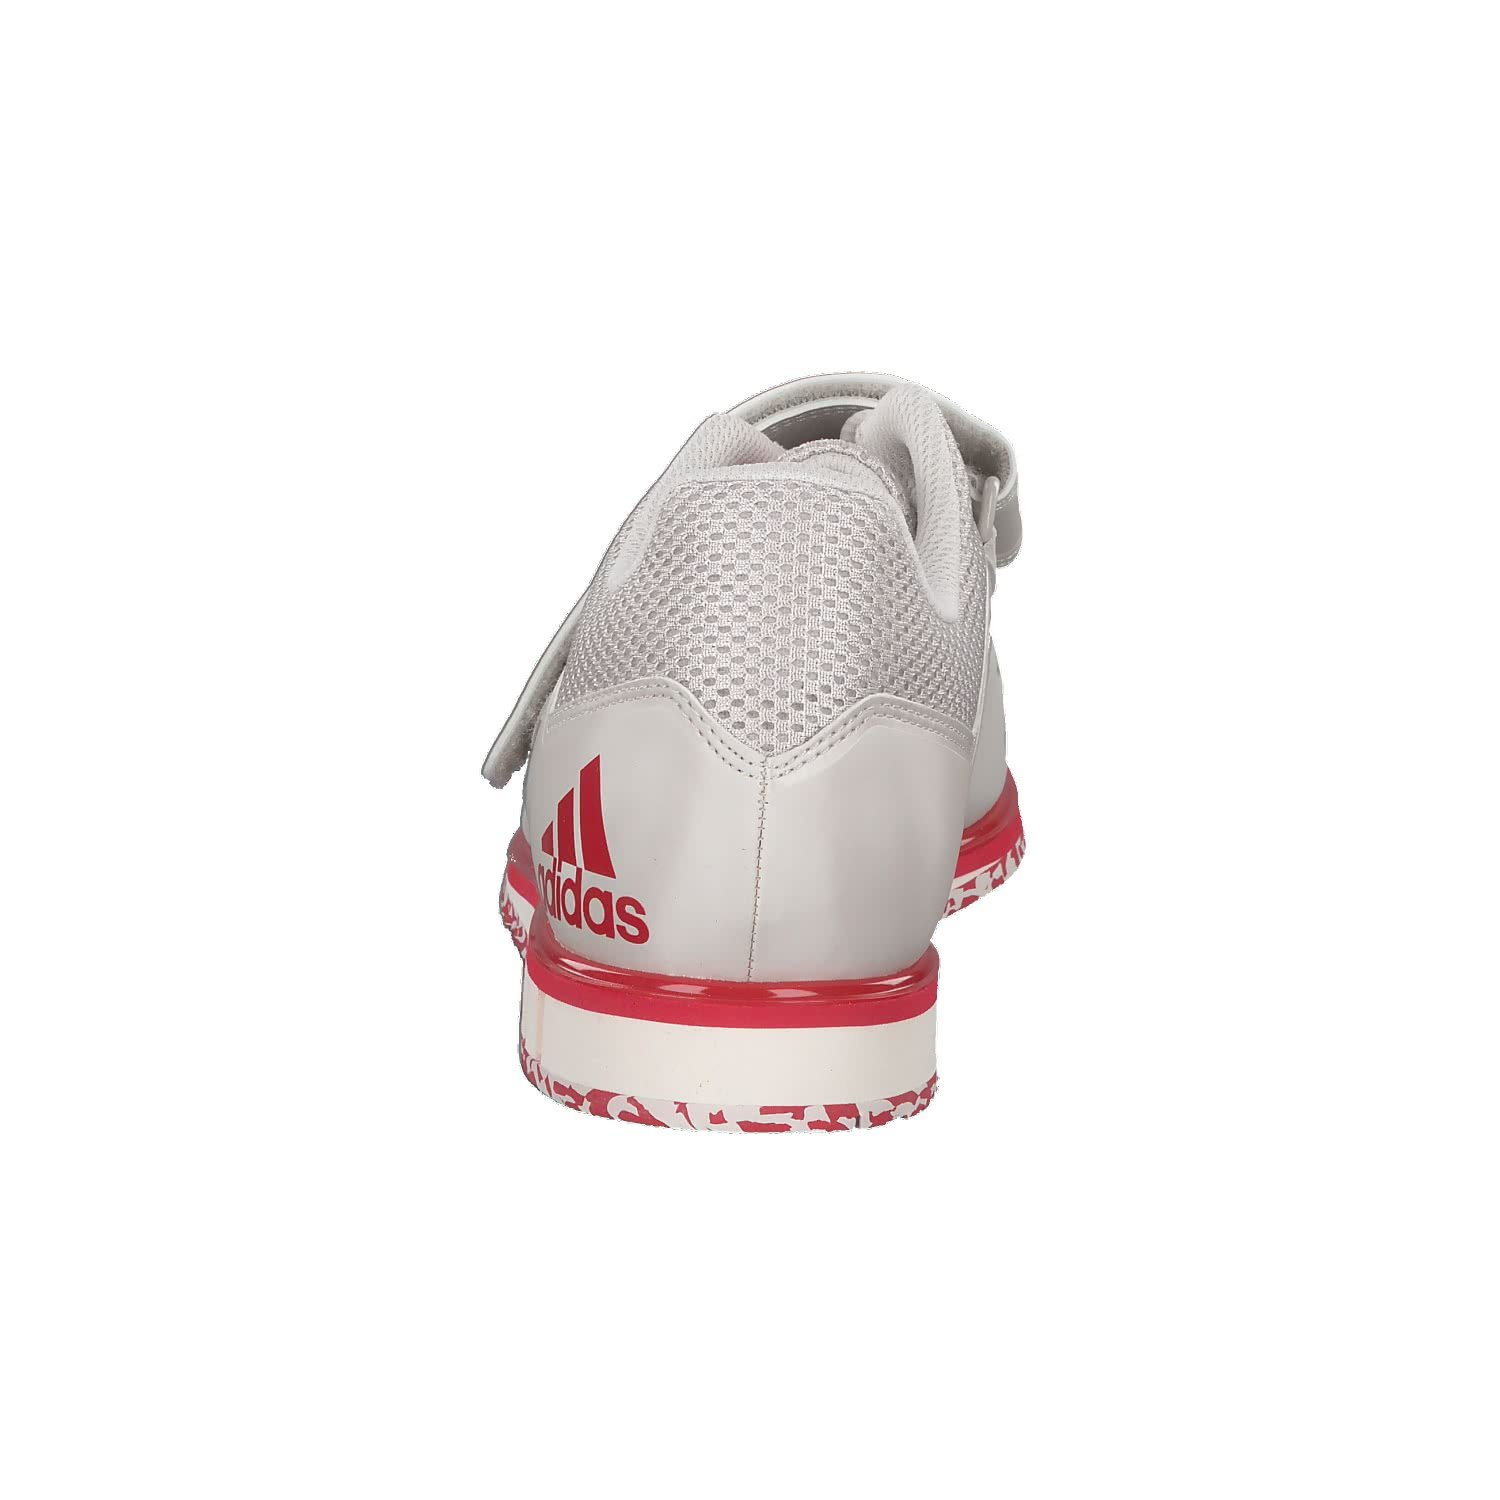 buy popular d43bc 6d160 adidas , Chaussures Chaussures Chaussures Chaussures de Fitness Homme, de  3ef4e8